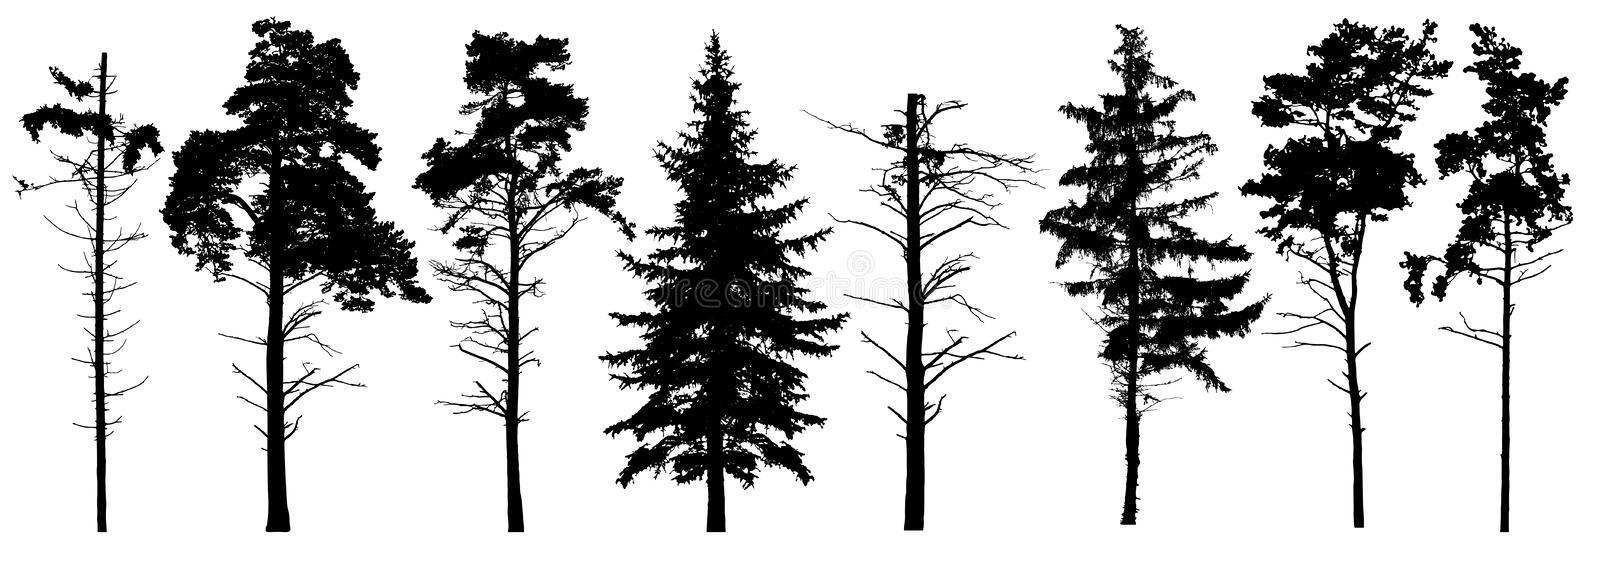 Coniferous set evergreen tree with branches knots sticks in winter. Forest trees silhouette. Isolated vector set. vector illustration